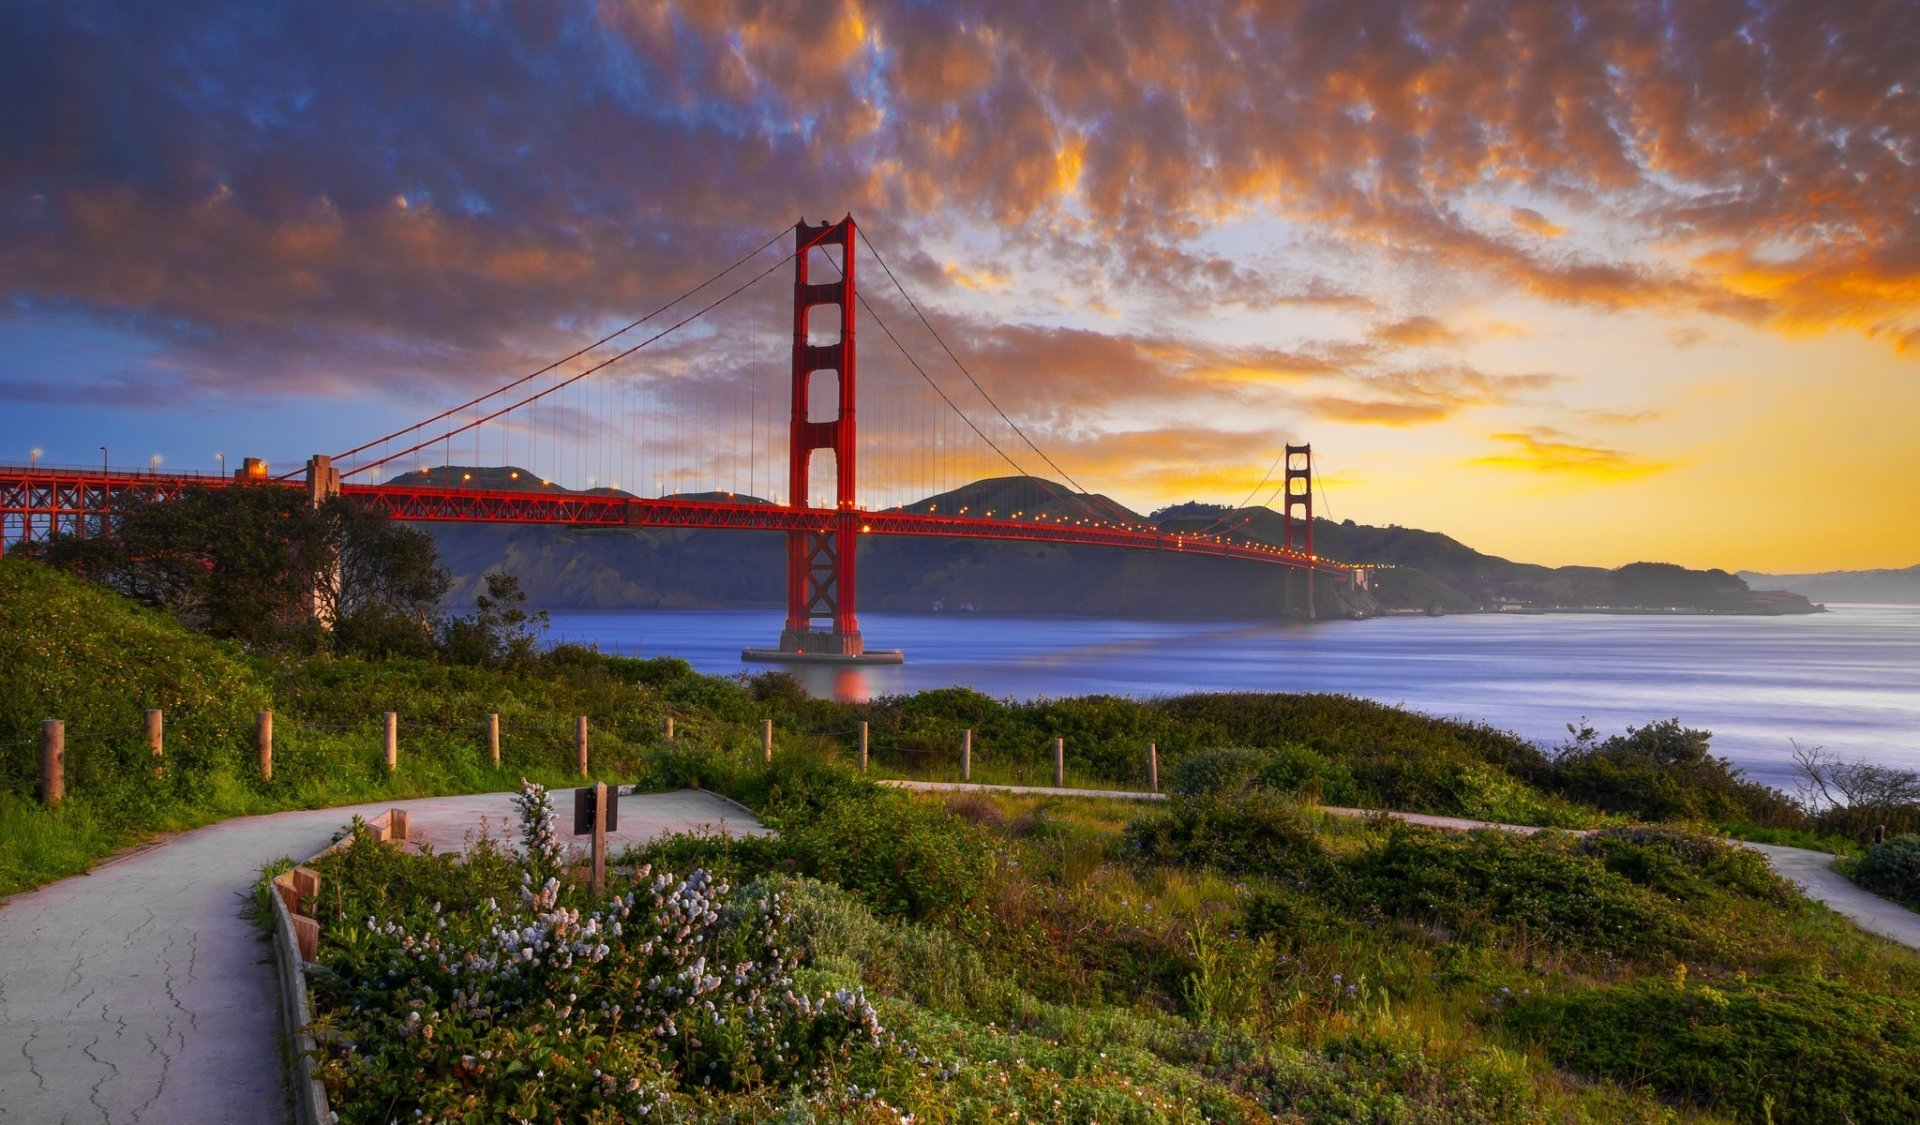 Man Made - Golden Gate  California San Francisco Bridge Wallpaper